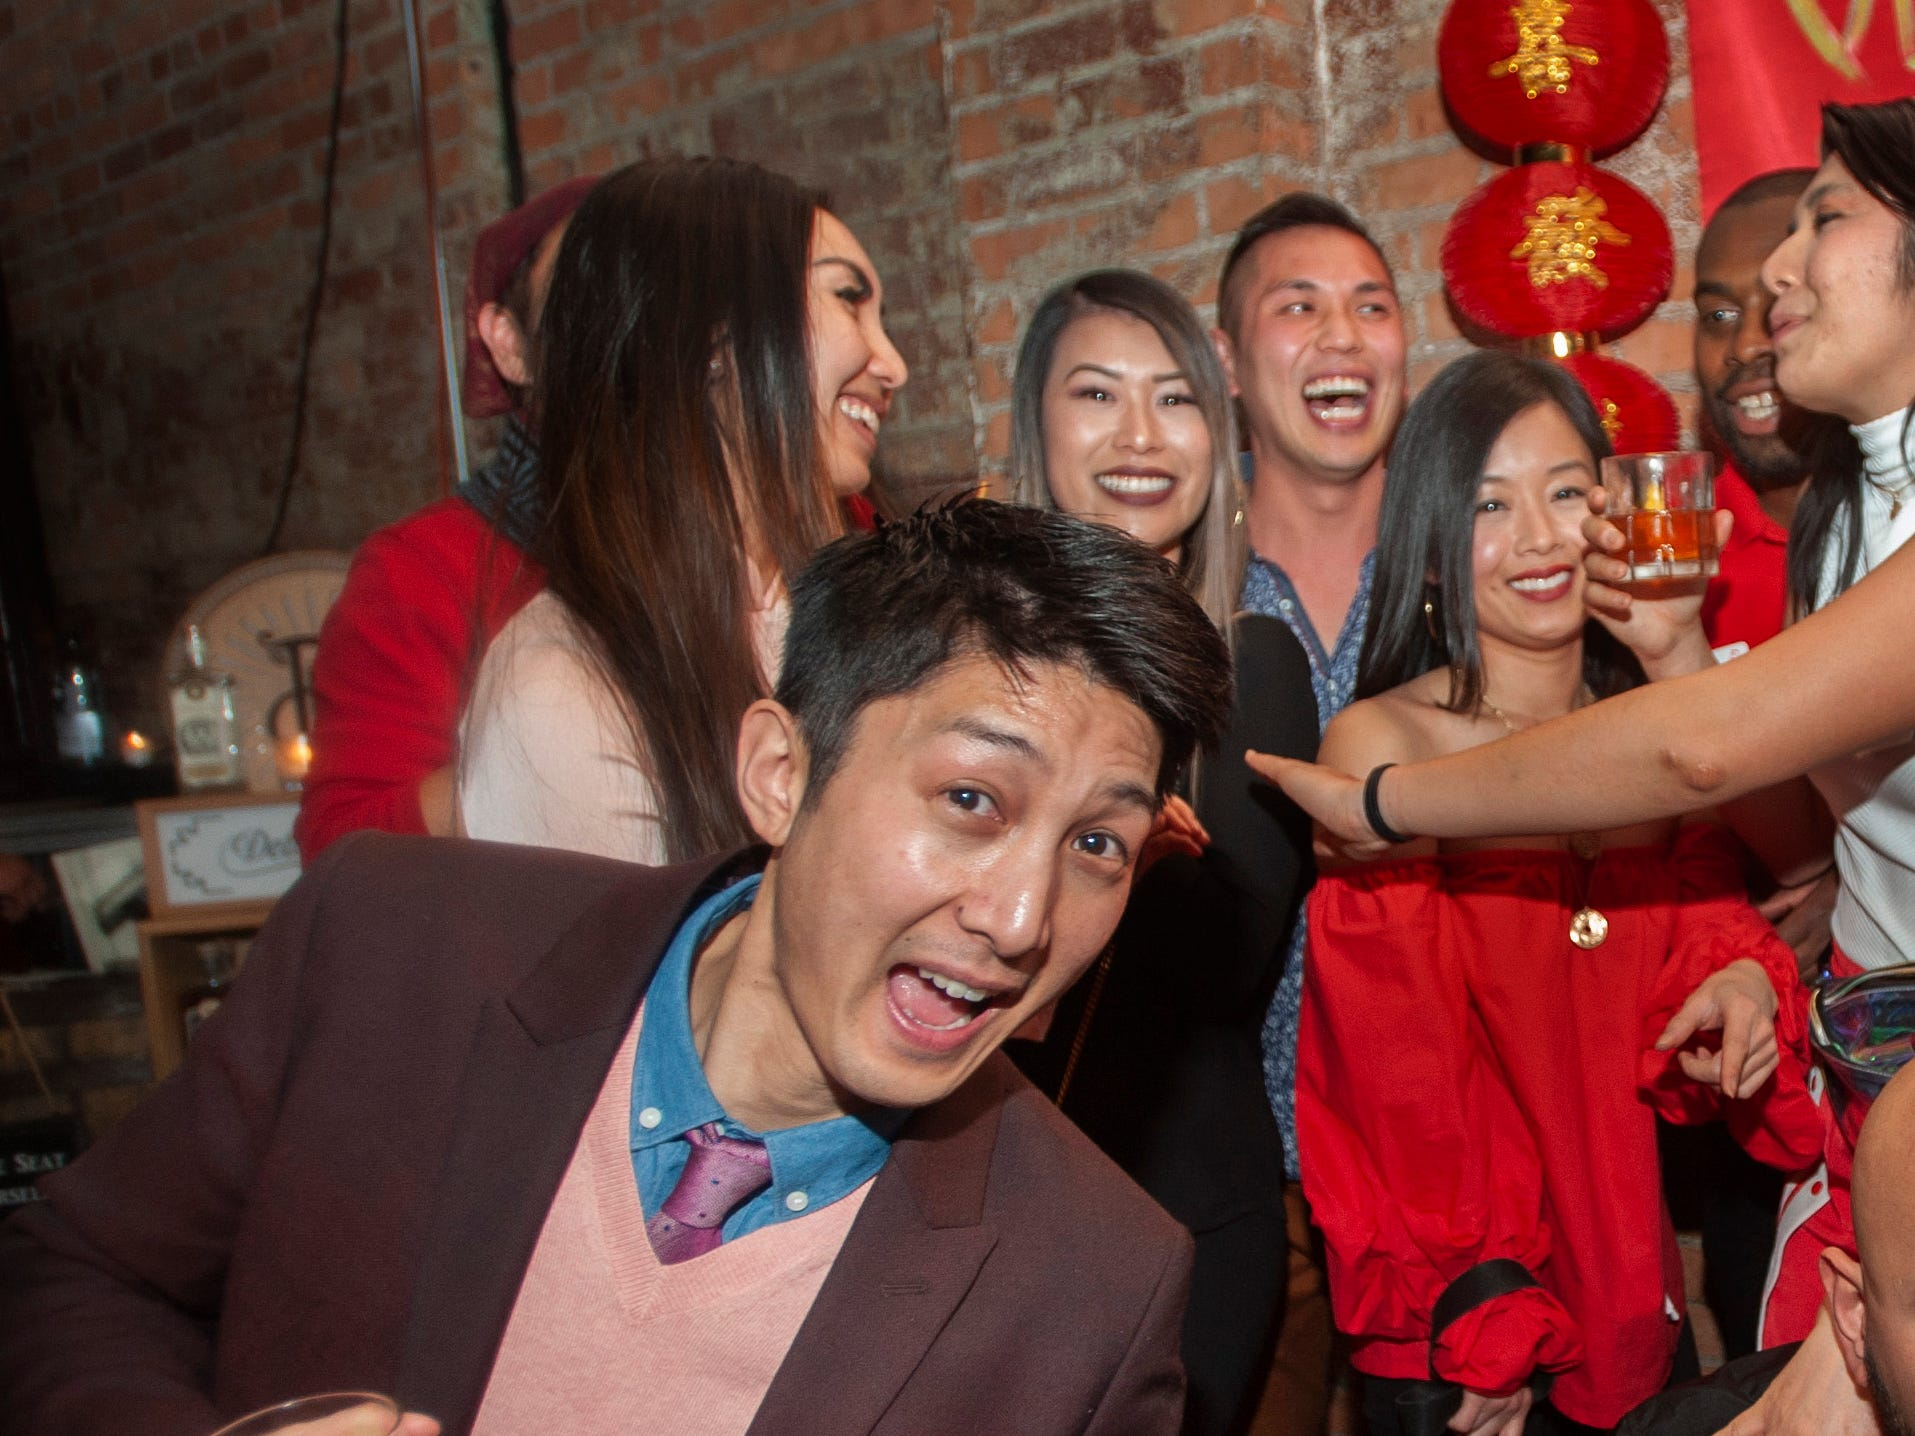 Over the Moon party goer David Tran of Windsor, Ontario enjoys enjoys celebrating the Lunar New Year with an east-Asian style party at Detroit City Distillery in Eastern Market on Thursday, February 7, 2019.